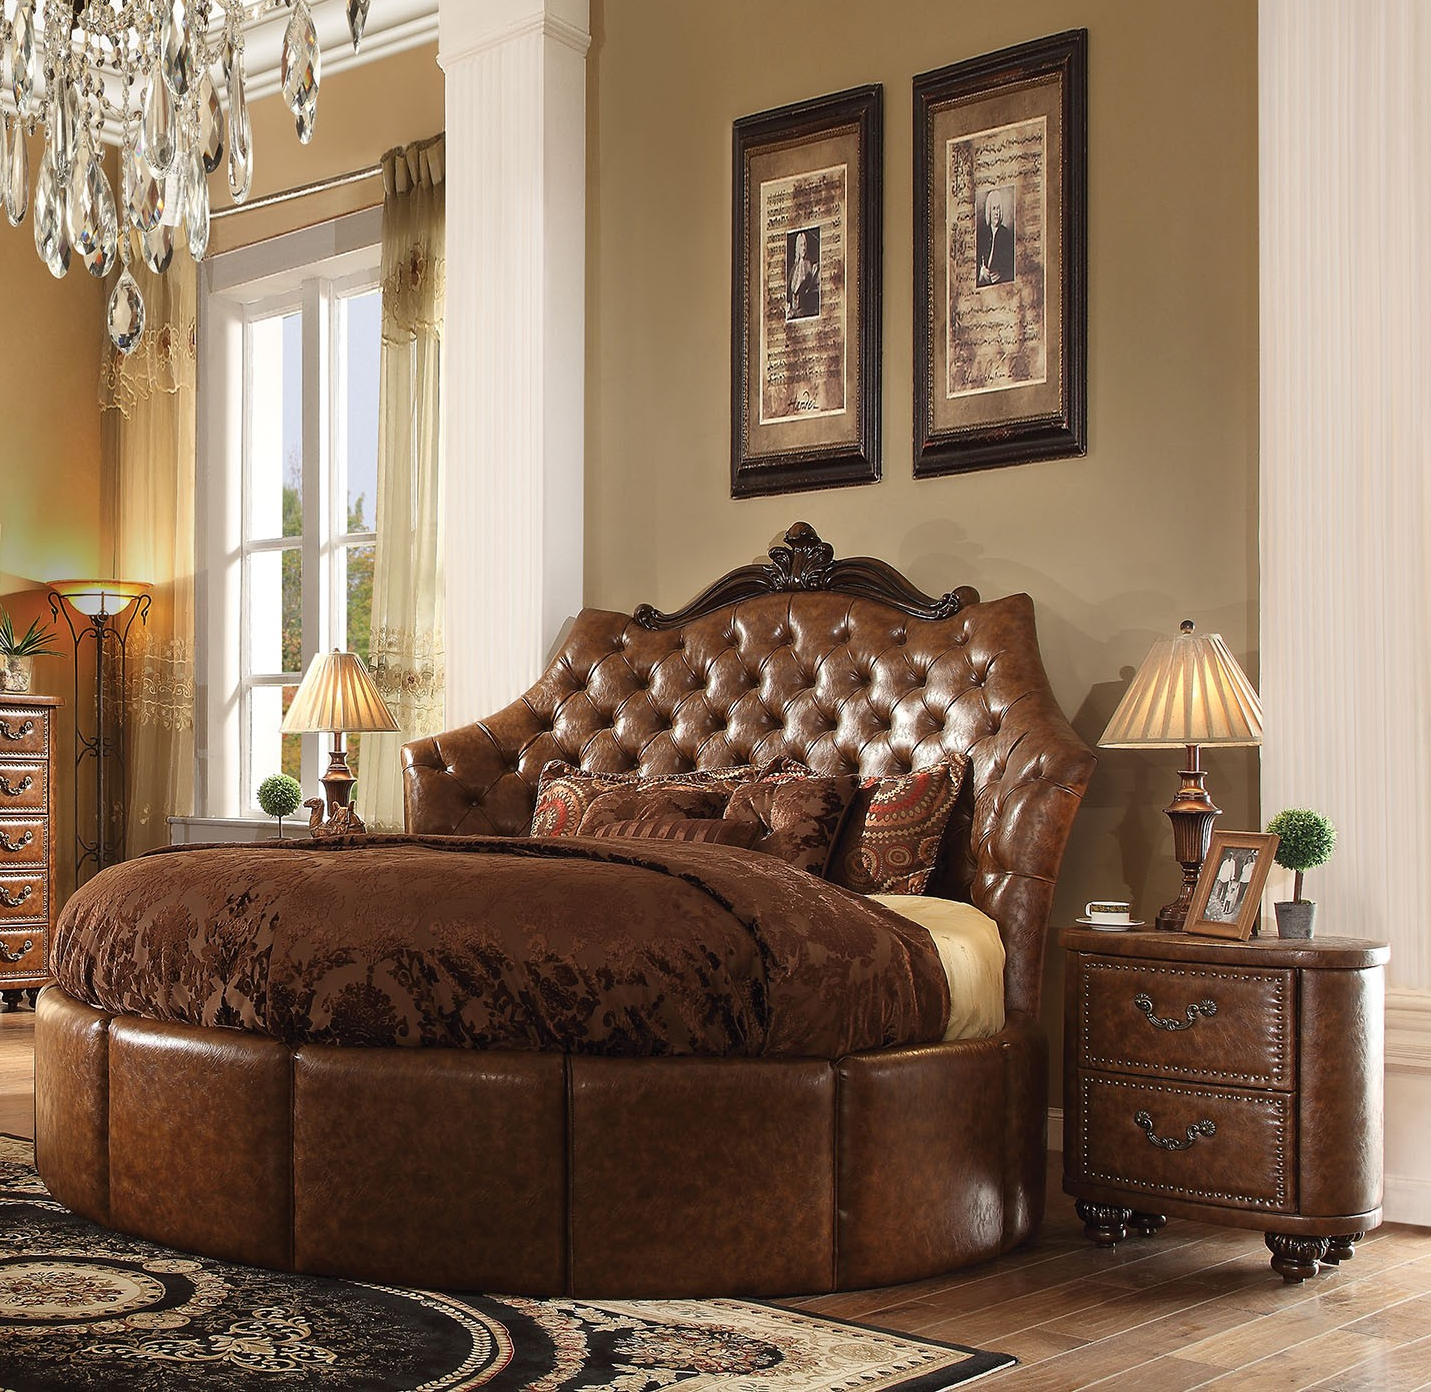 formal traditional cherry brown round bed bedroom set 25157rd